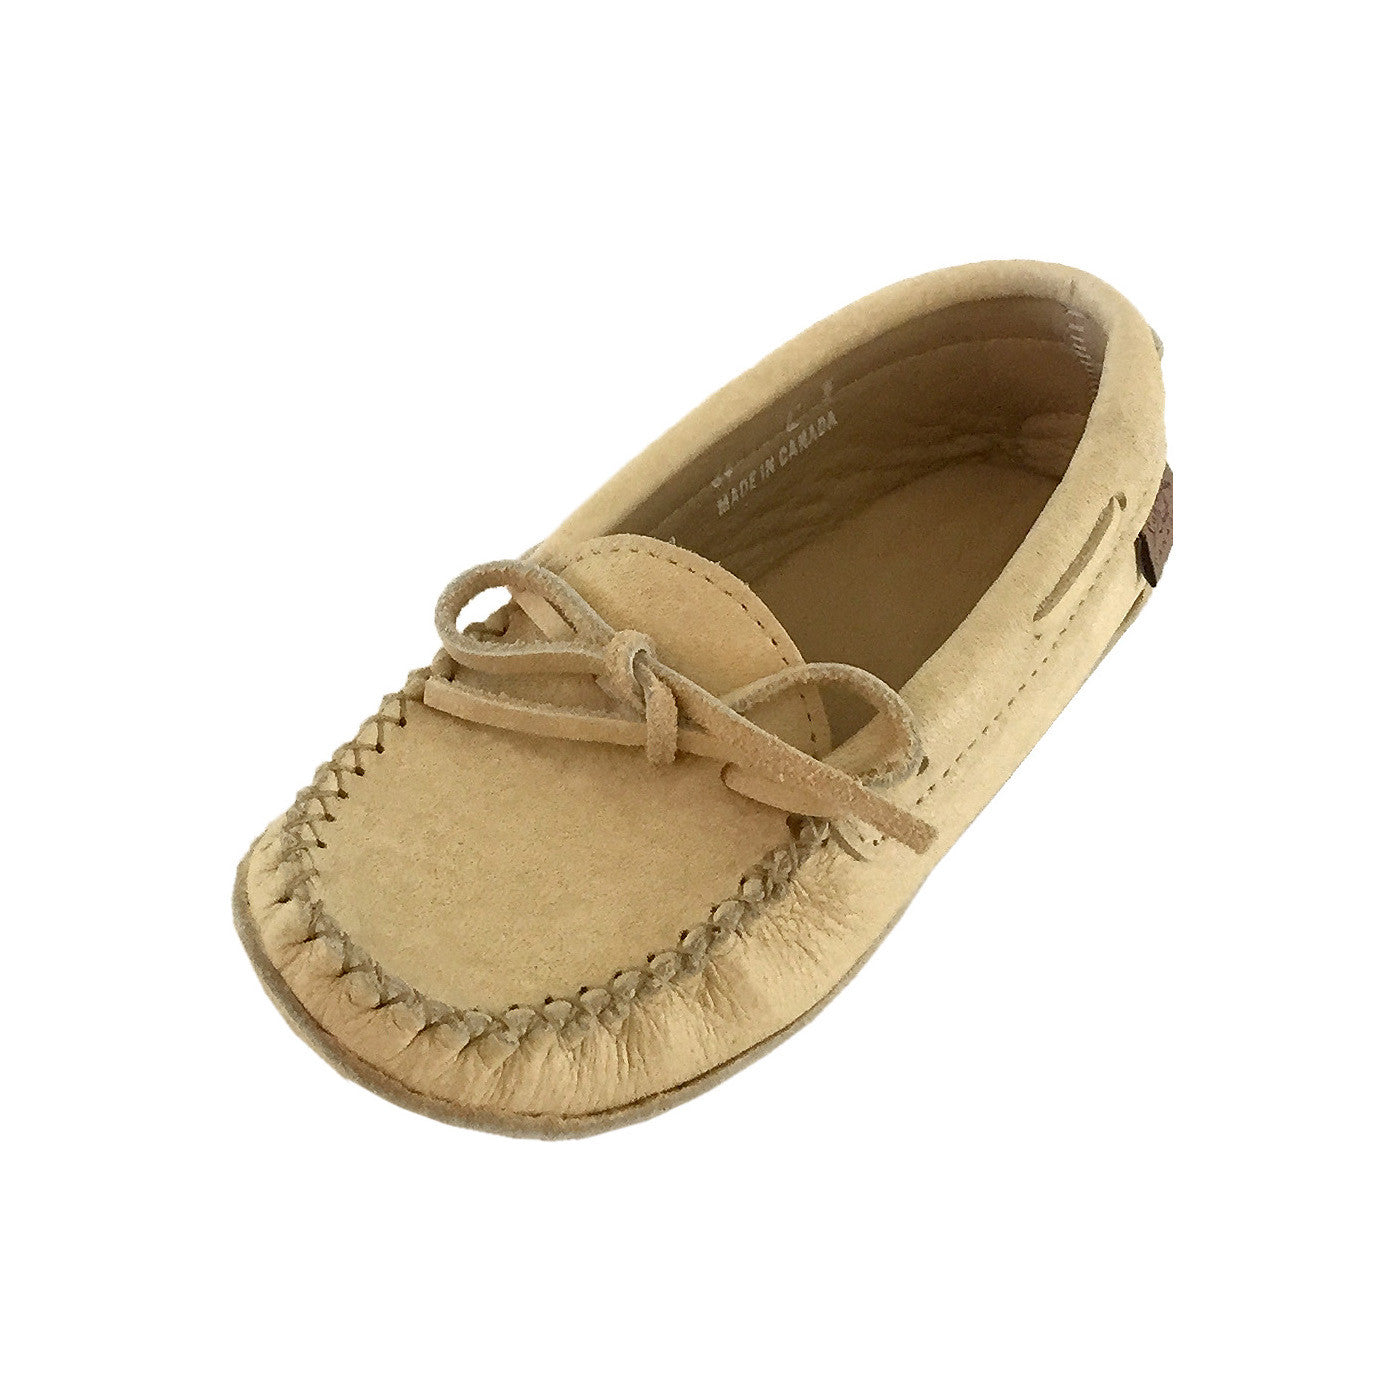 Women's Minnetonka Deerskin Softsole Moccasins - Country Outfitter